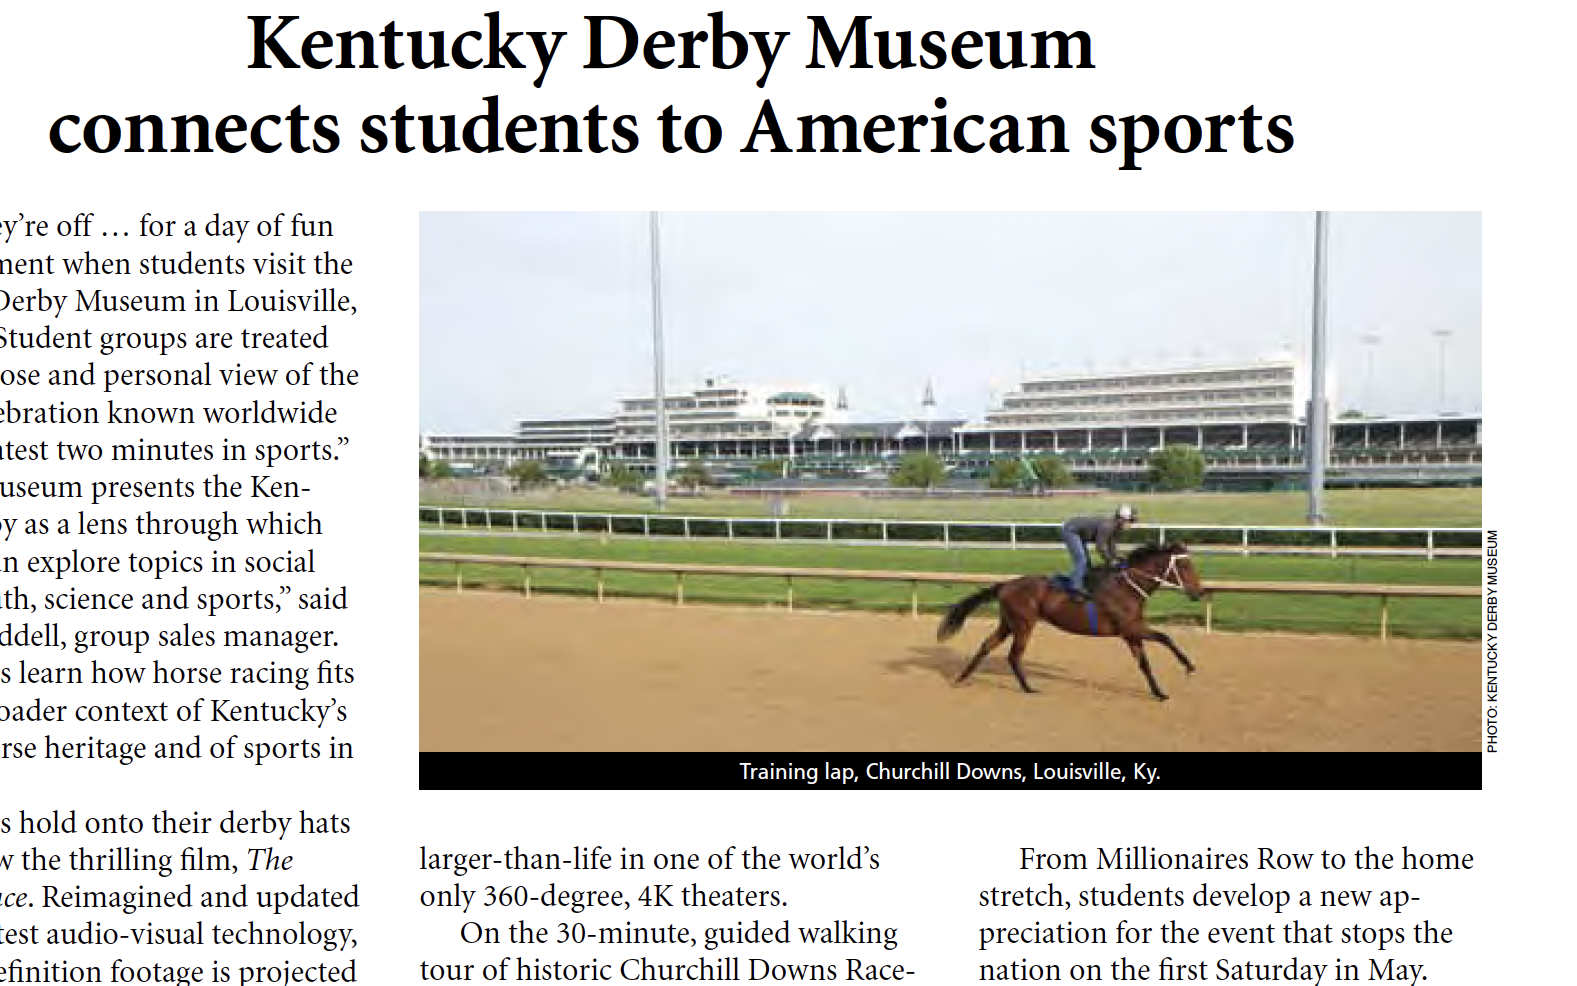 Kentucky Derby Museum connects students to American sports